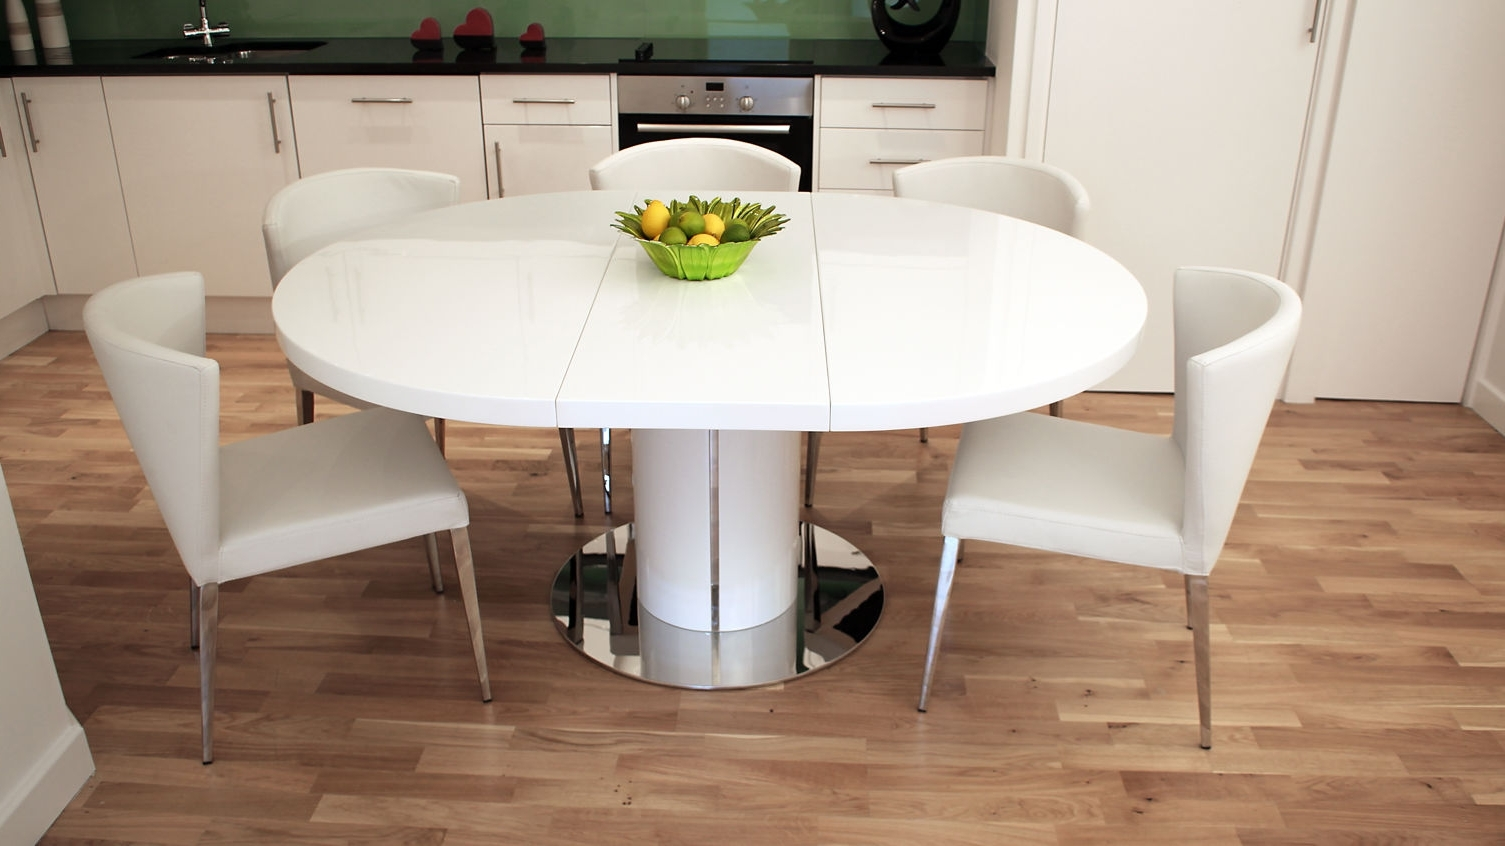 Preferred Image 1033 From Post: Round Pedestal Dining Table – Simplistic For Glass Round Extending Dining Tables (View 18 of 25)